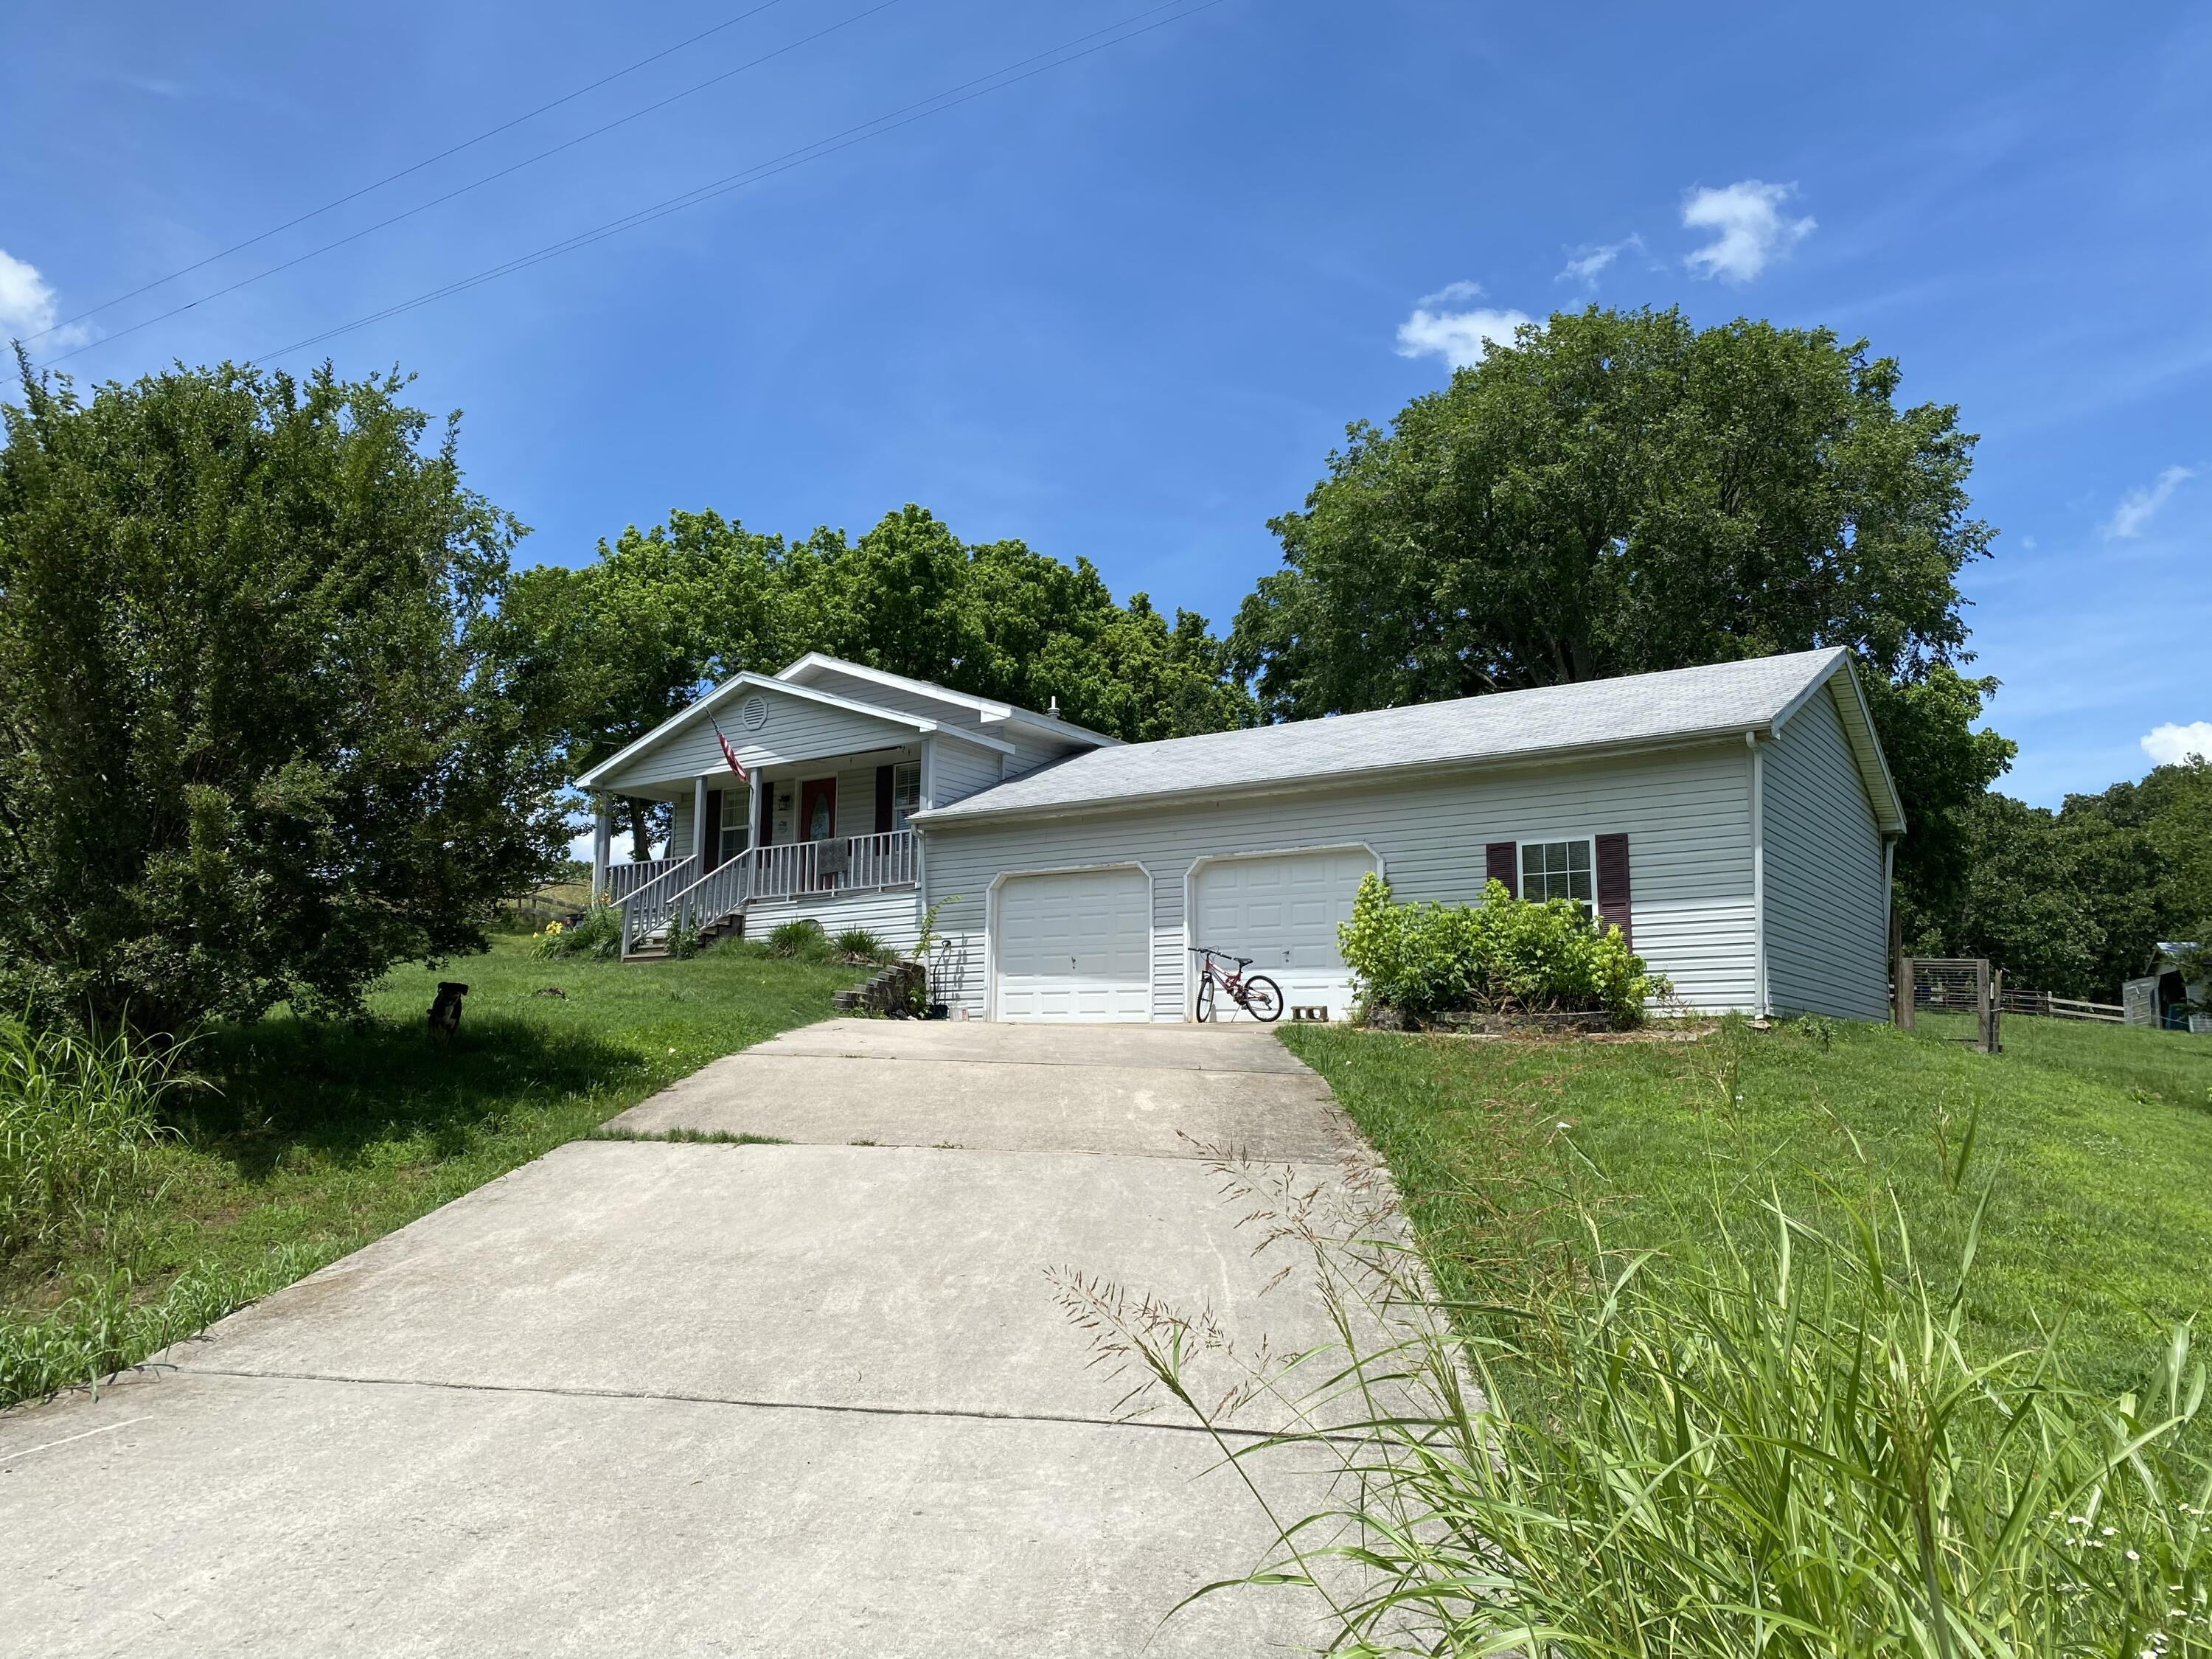 7202 South State Highway Ava, MO 65608